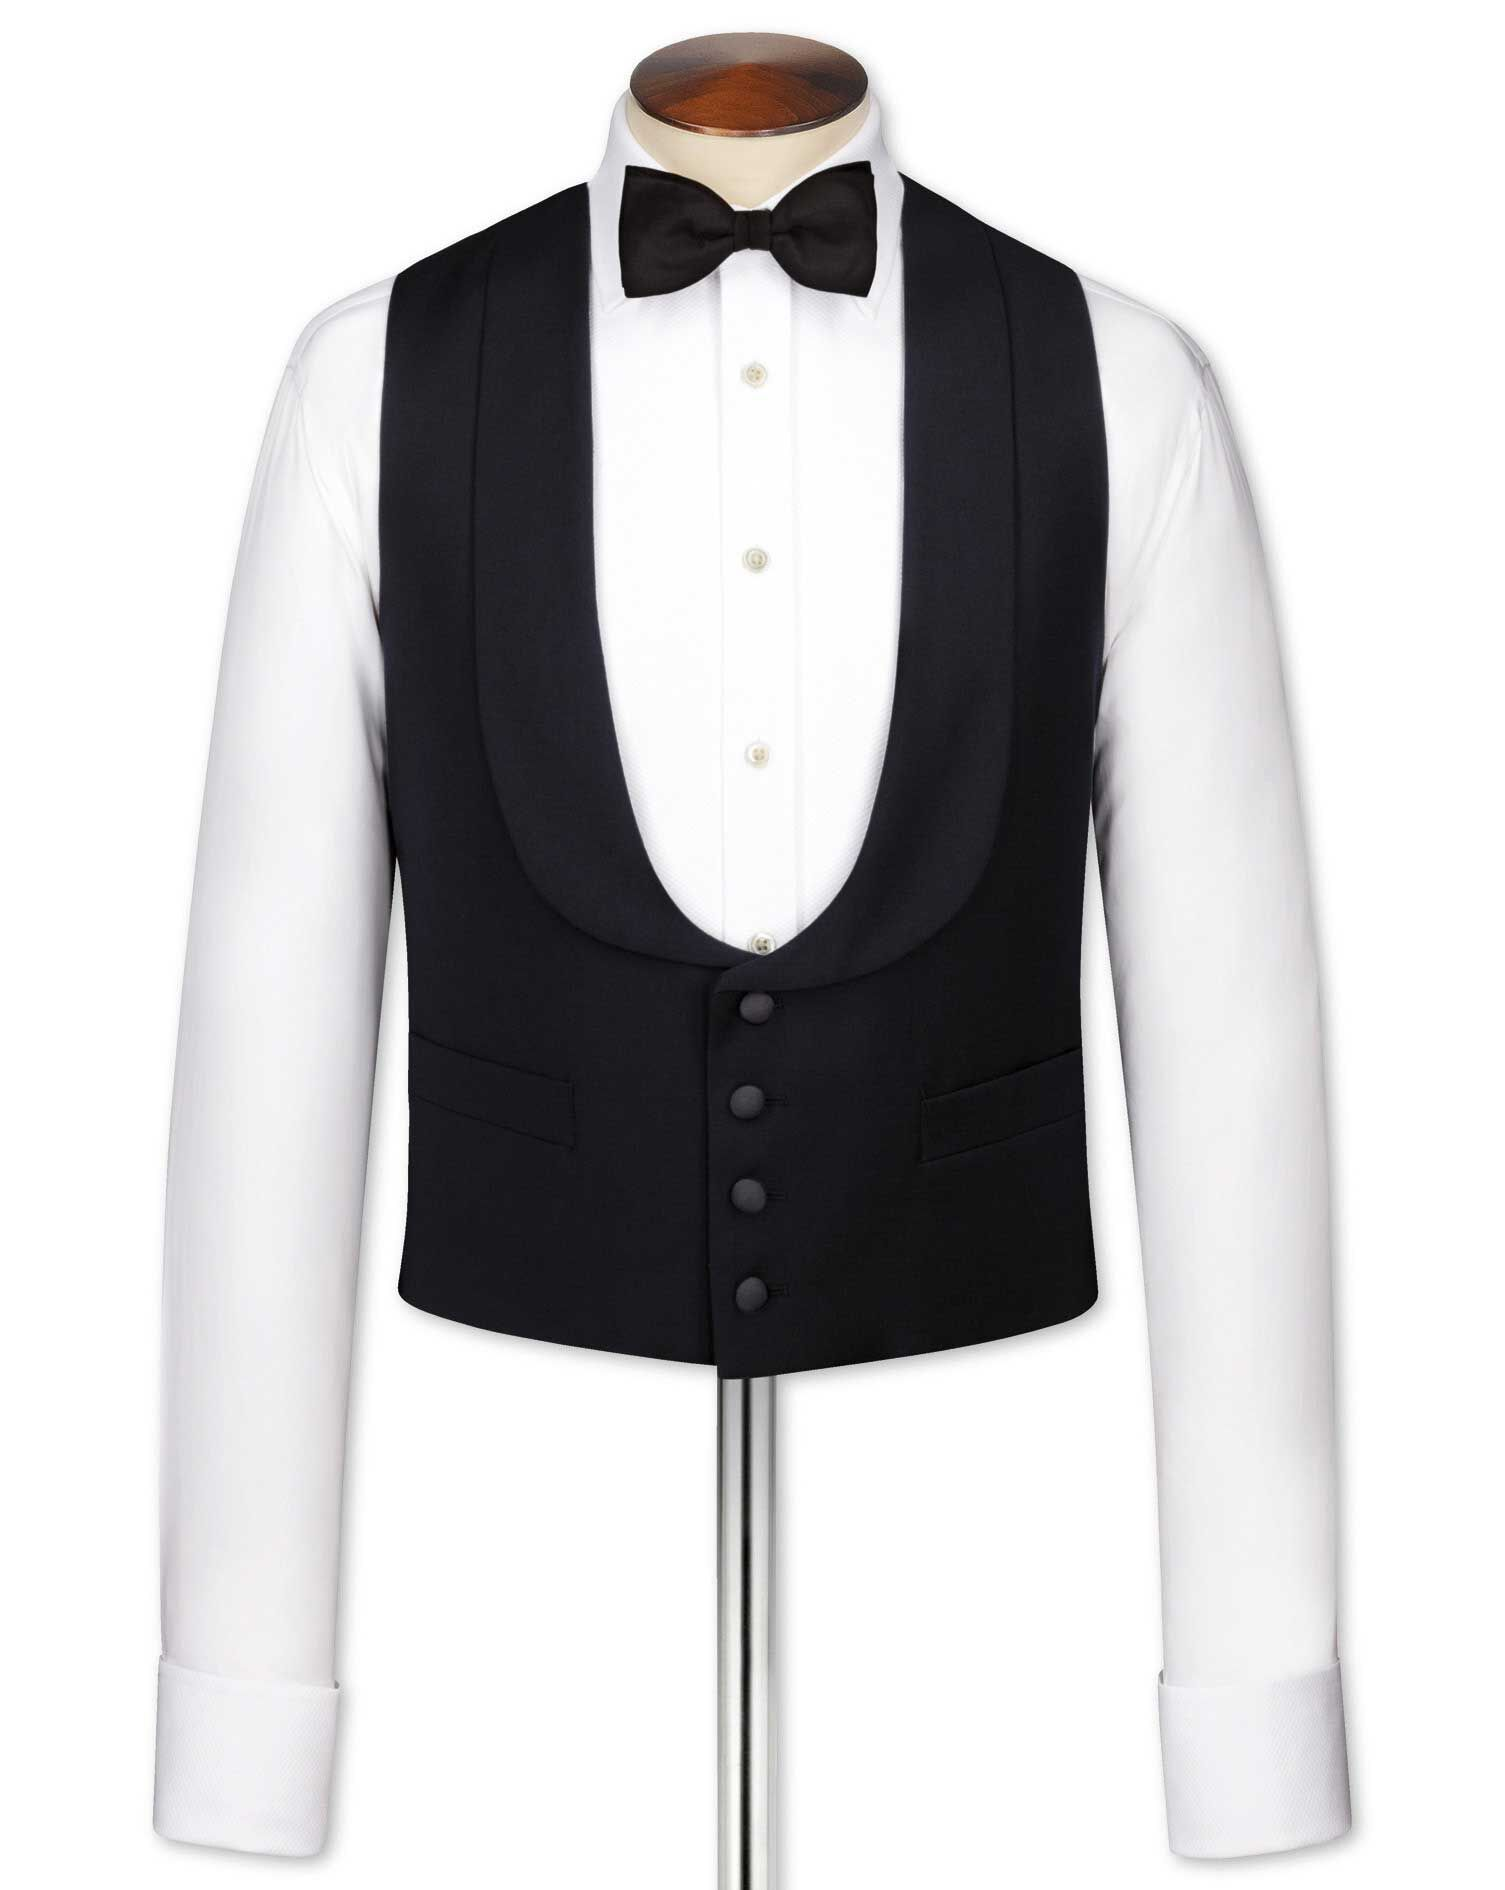 Victorian Men's Clothing Charles Tyrwhitt Black tuxedo waistcoat £70.00 AT vintagedancer.com